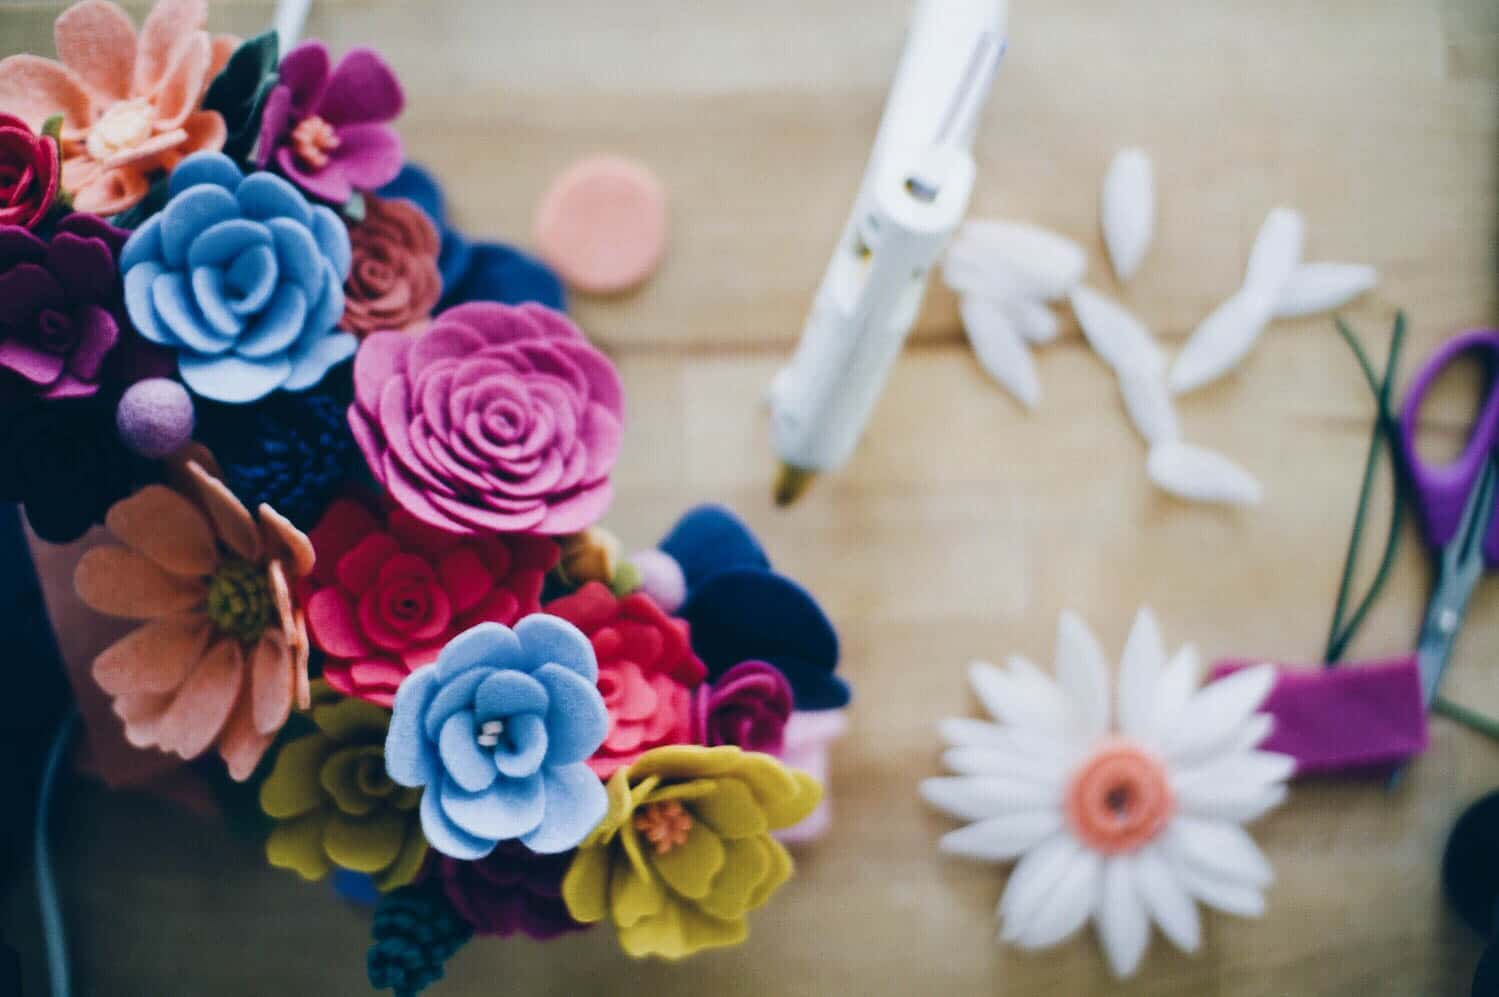 How To Make Felt Flowers  A Step By Step Tutorial Diy With Video!